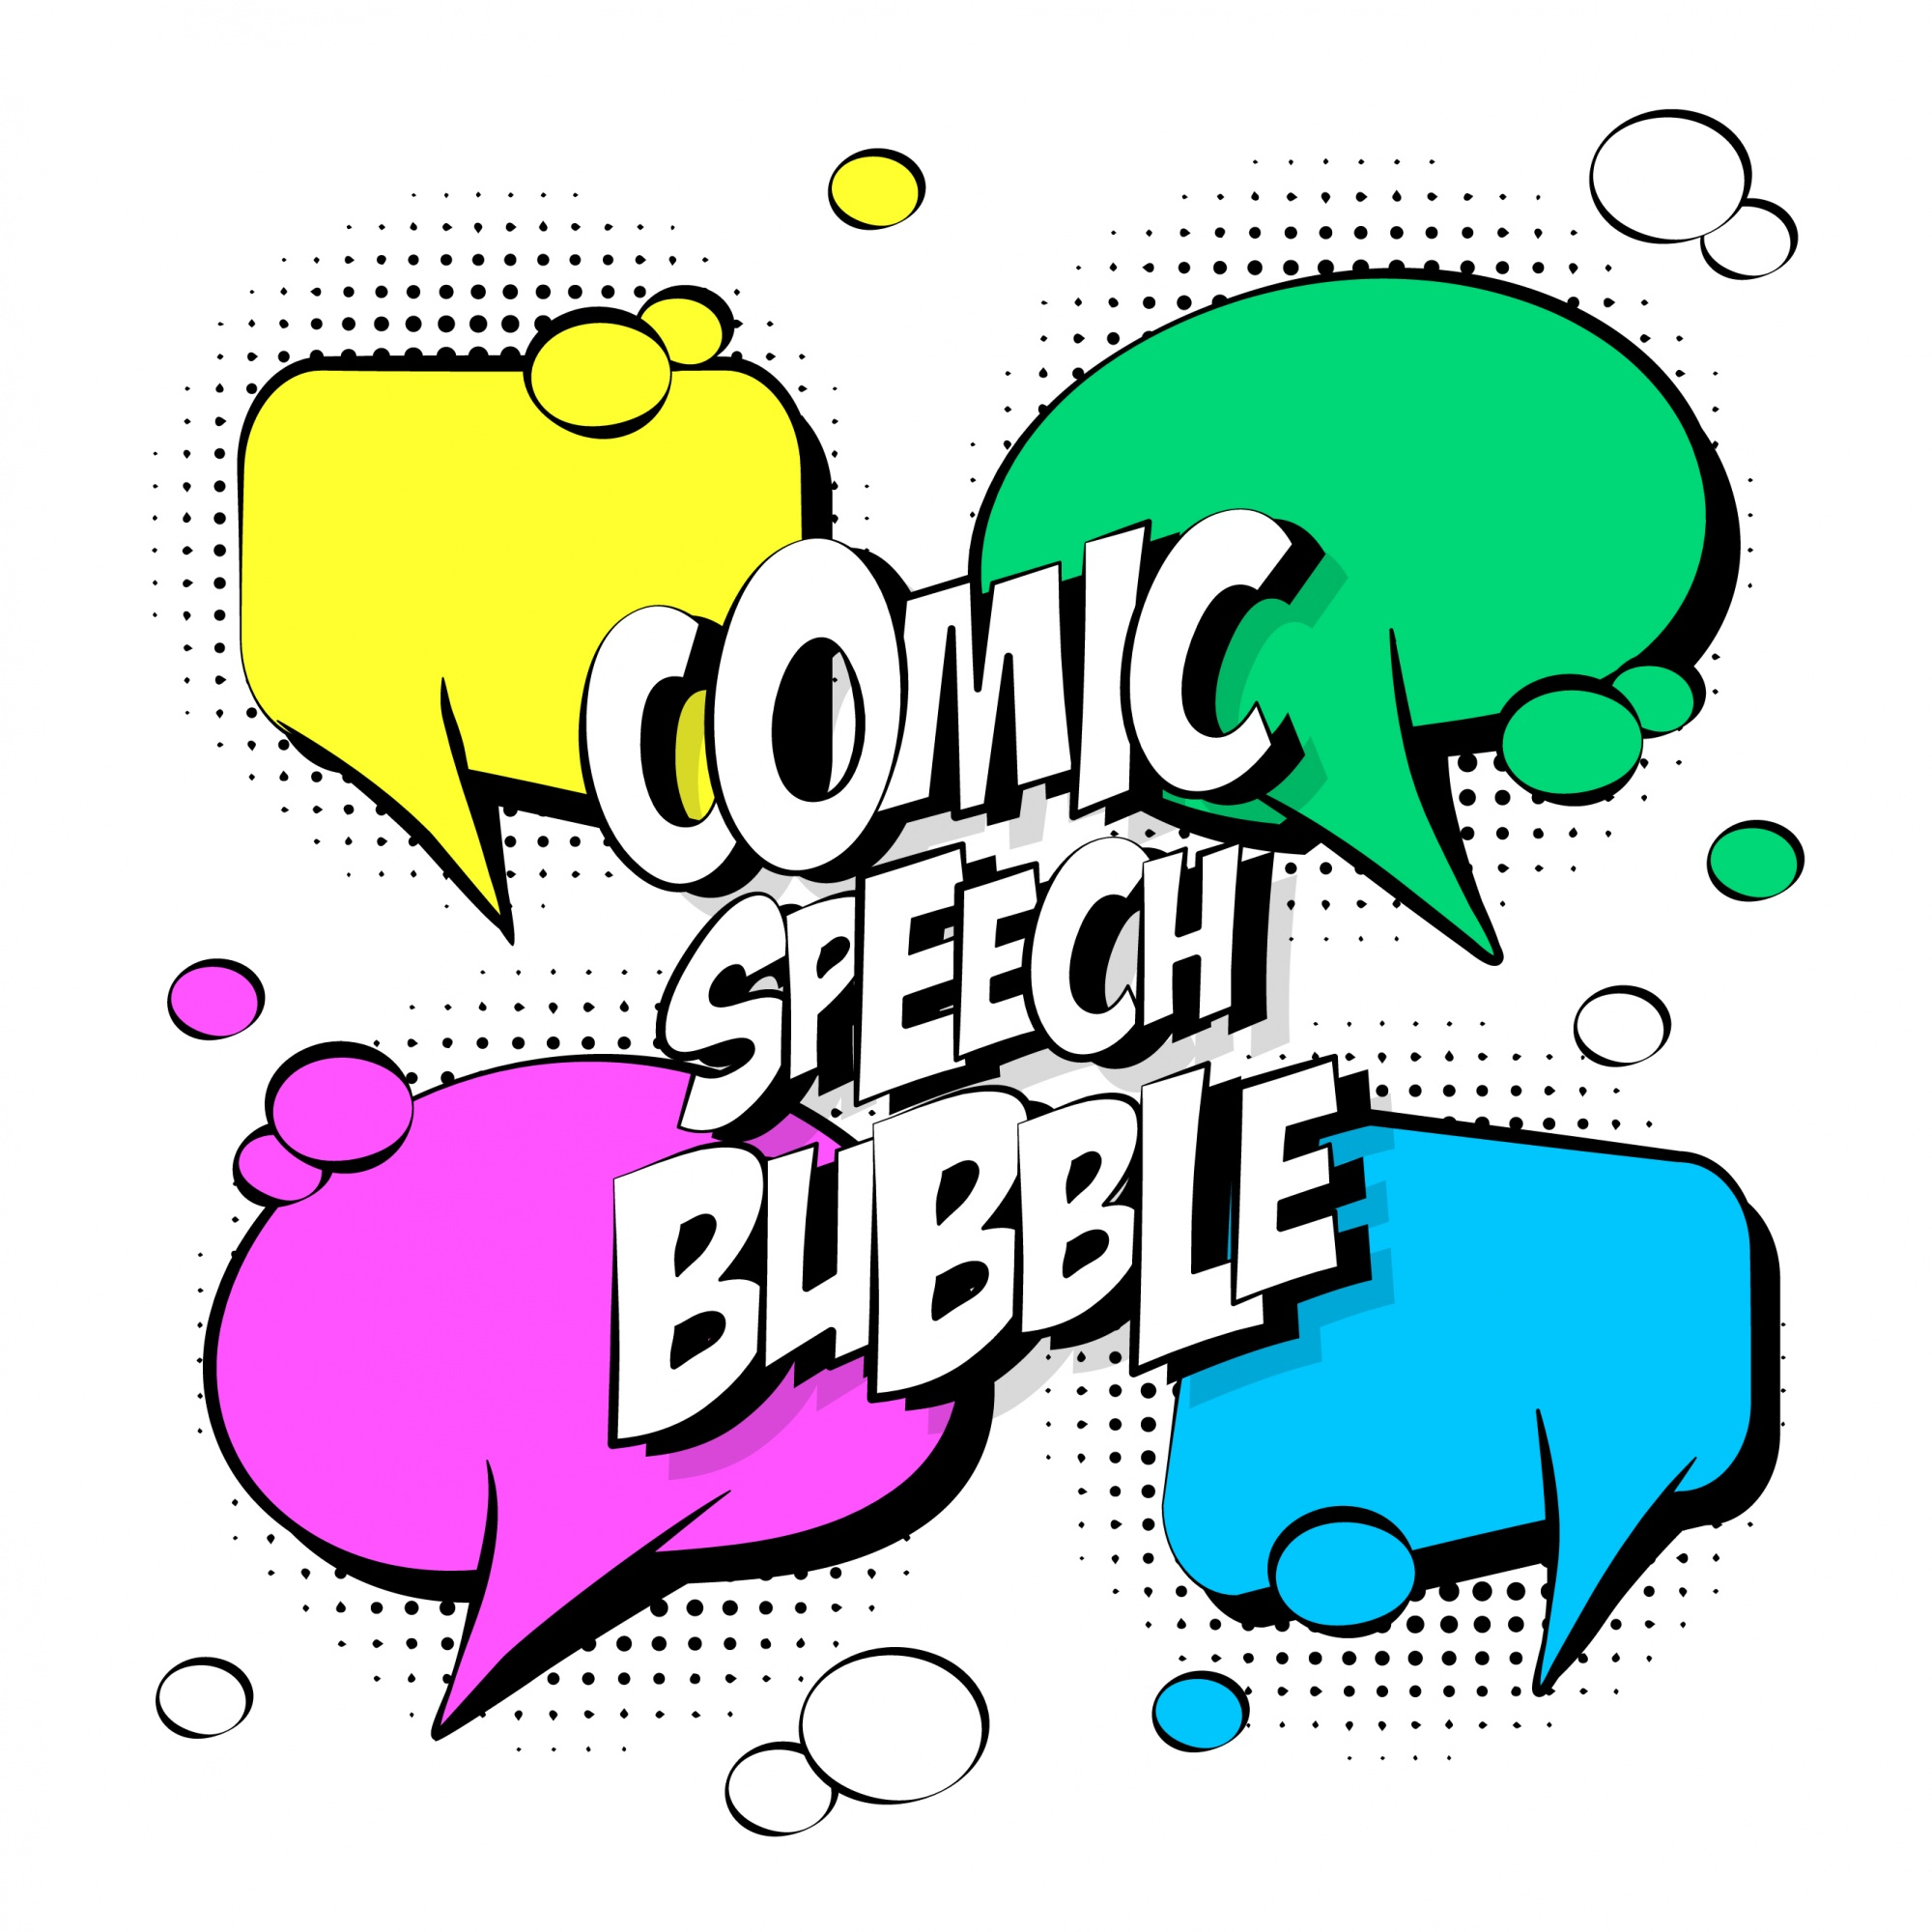 Vier comic speech bubble